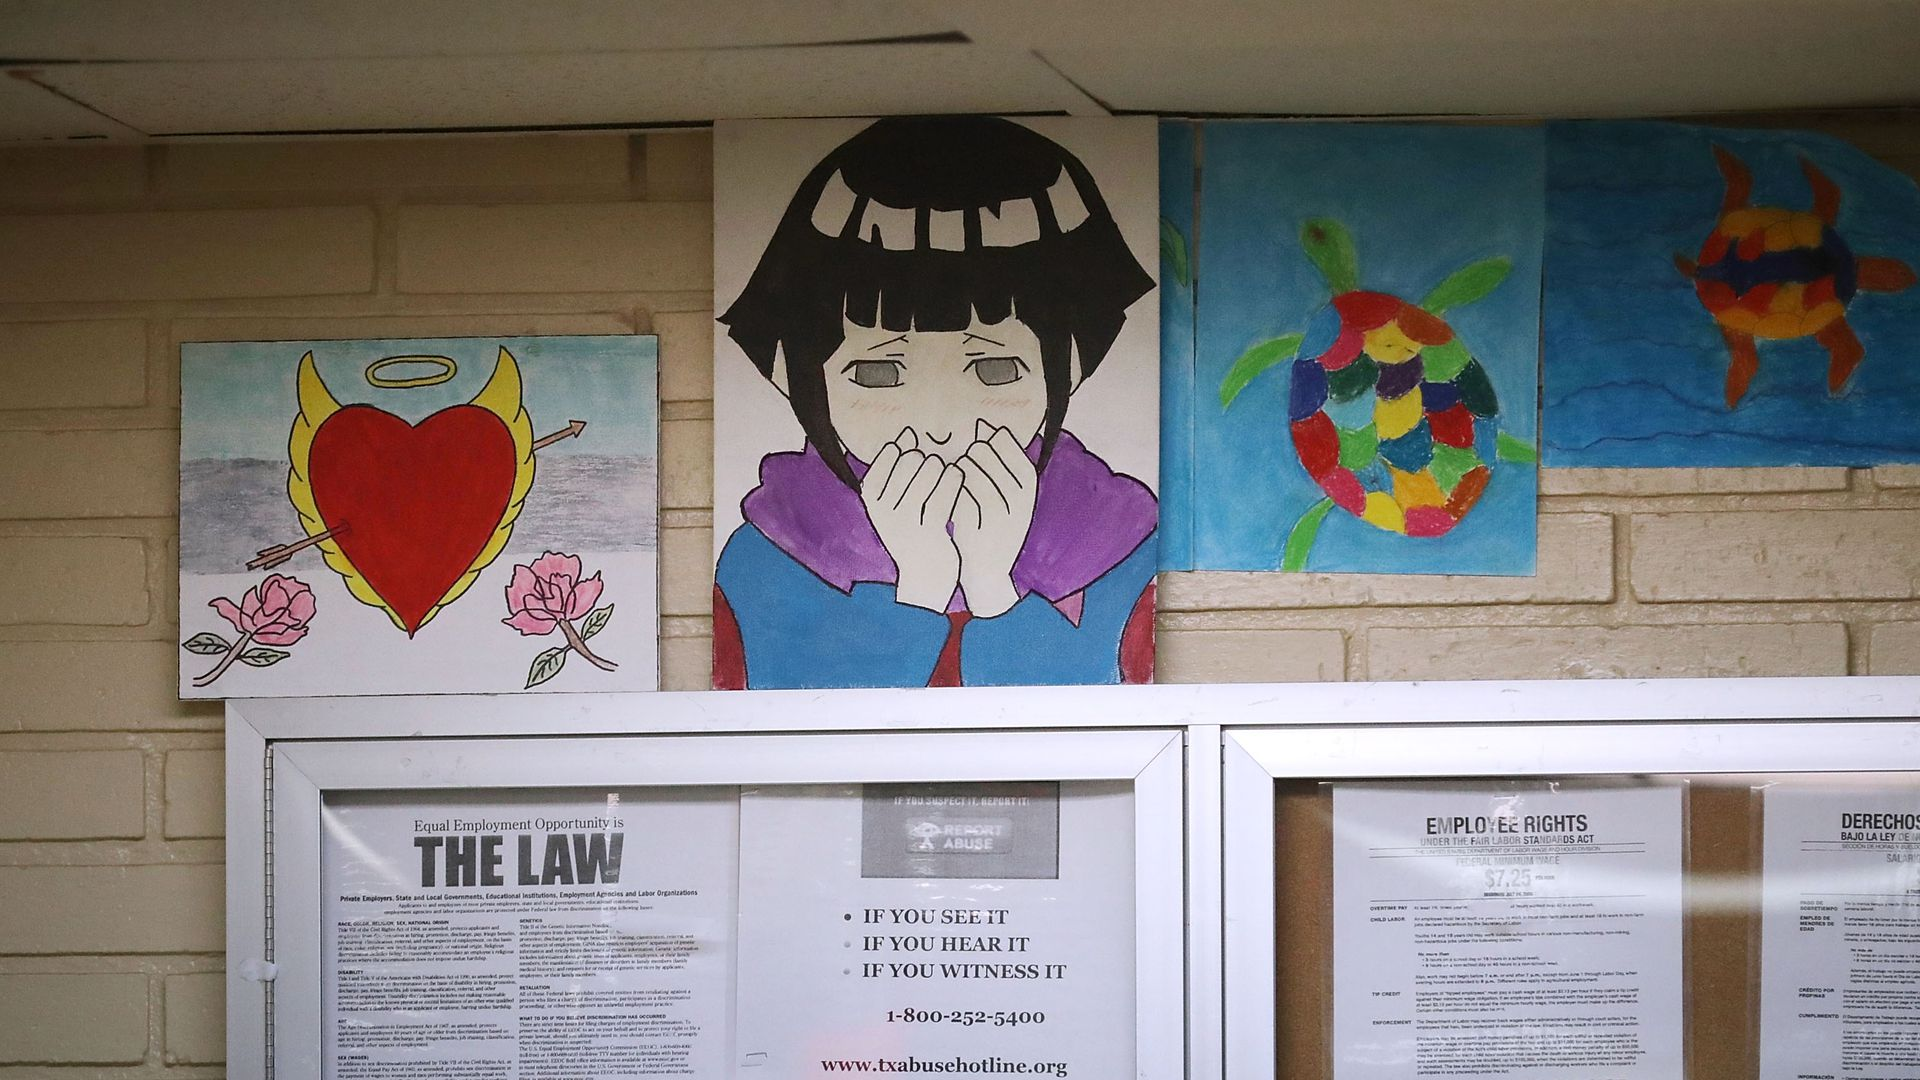 Posters and child paintings in an HHS child shelter